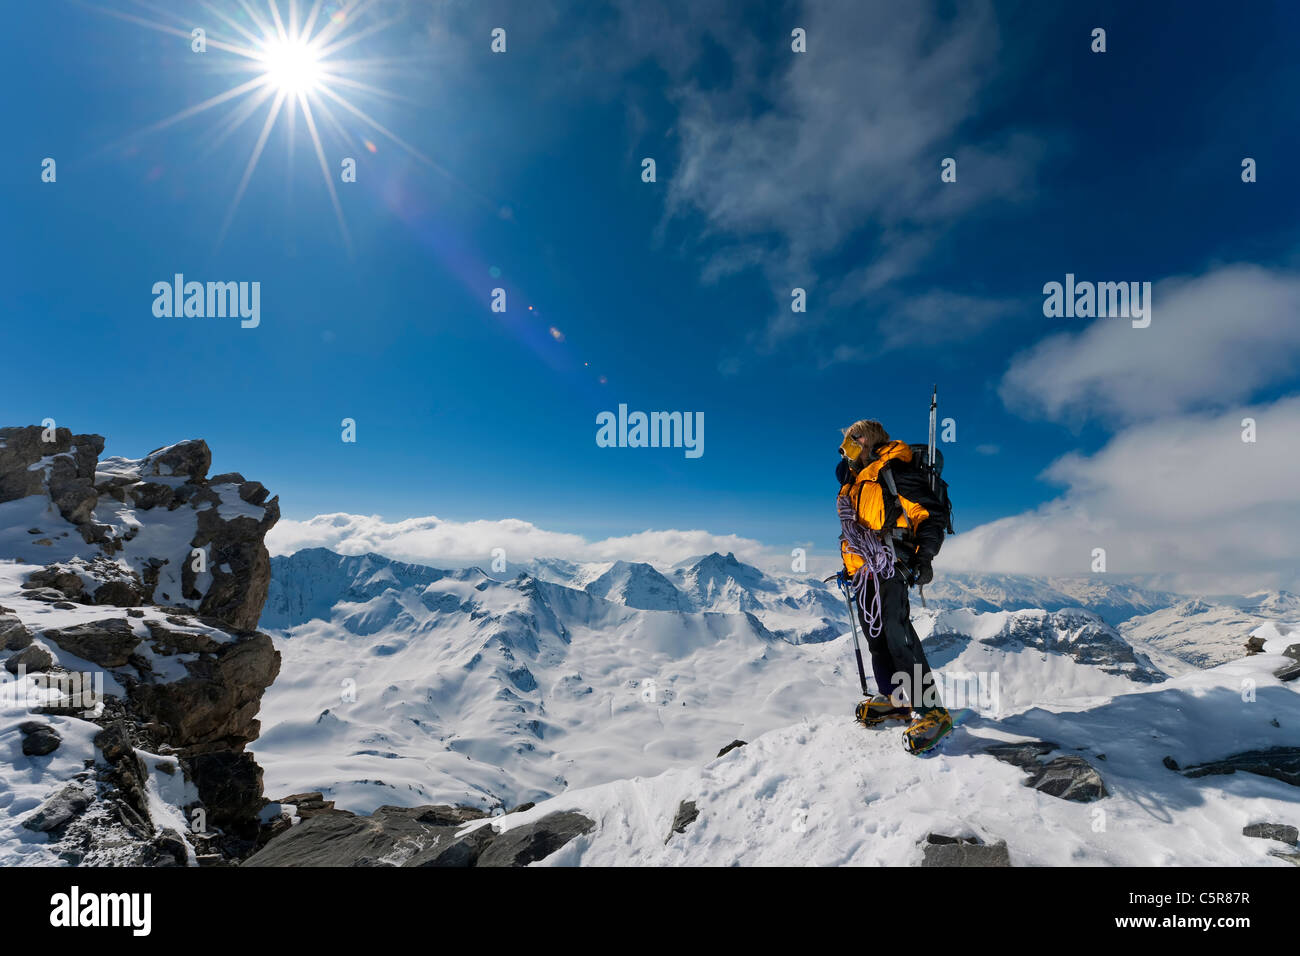 A mountaineer above the peaks and clouds looks at the amazing view. - Stock Image